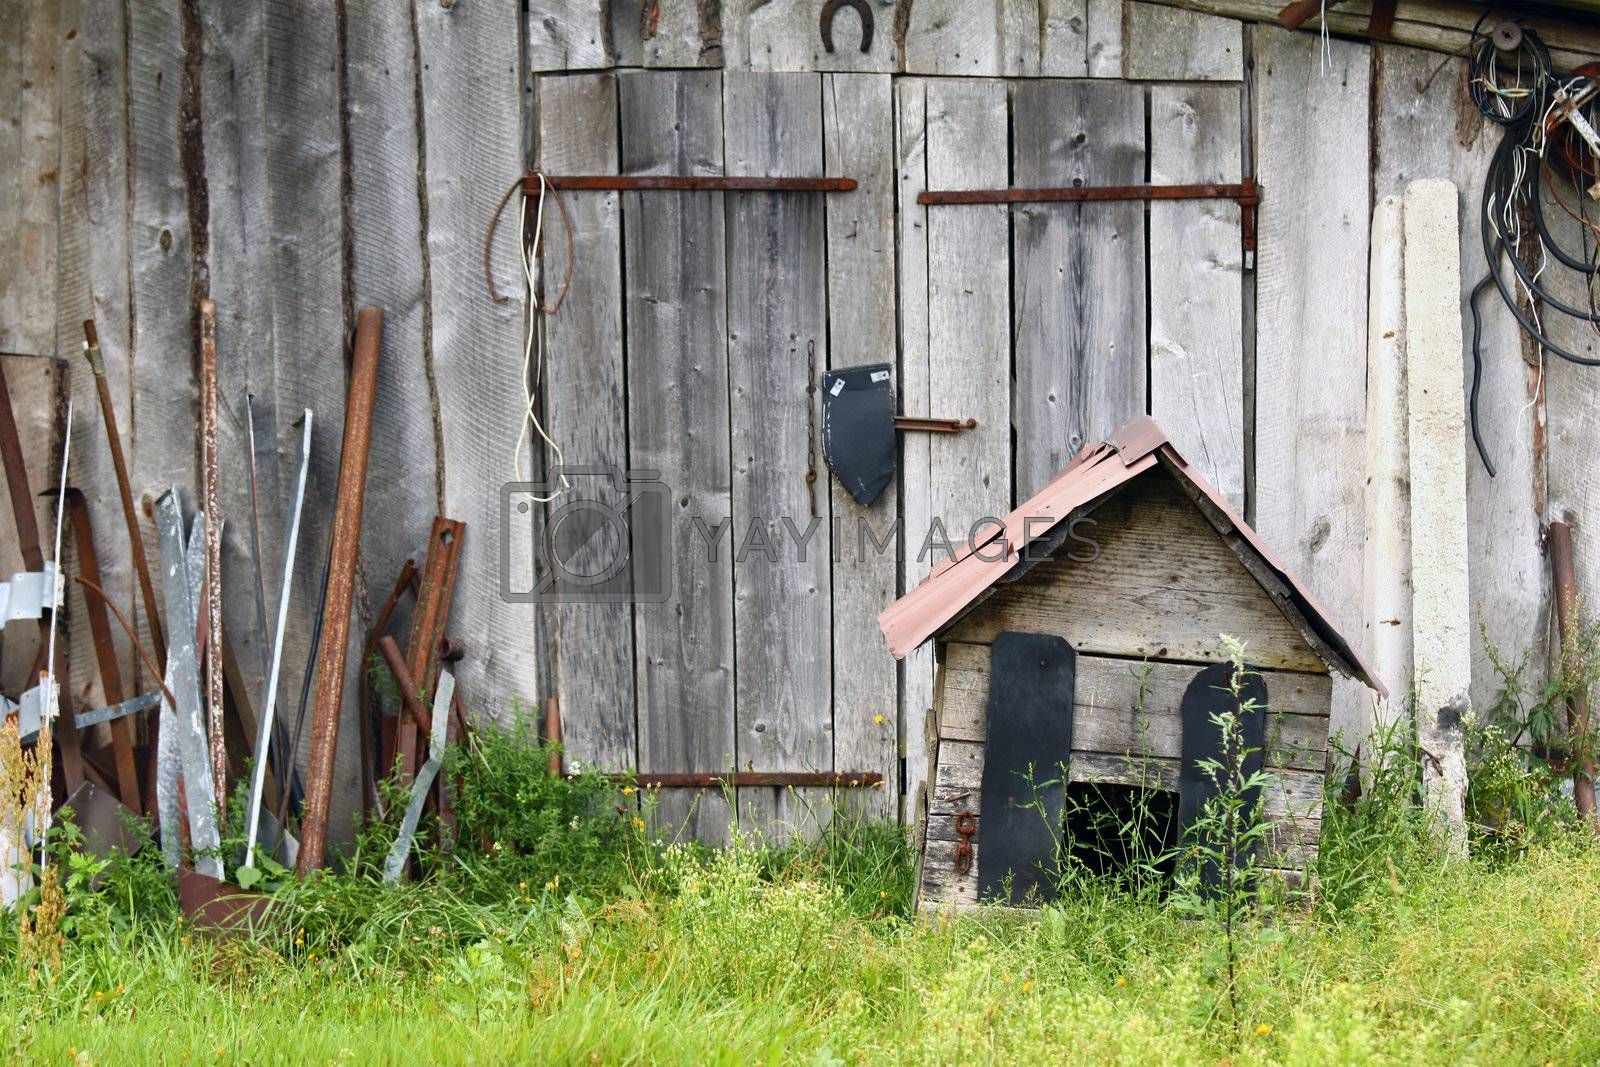 Old abandoned barn with old rusty kennel